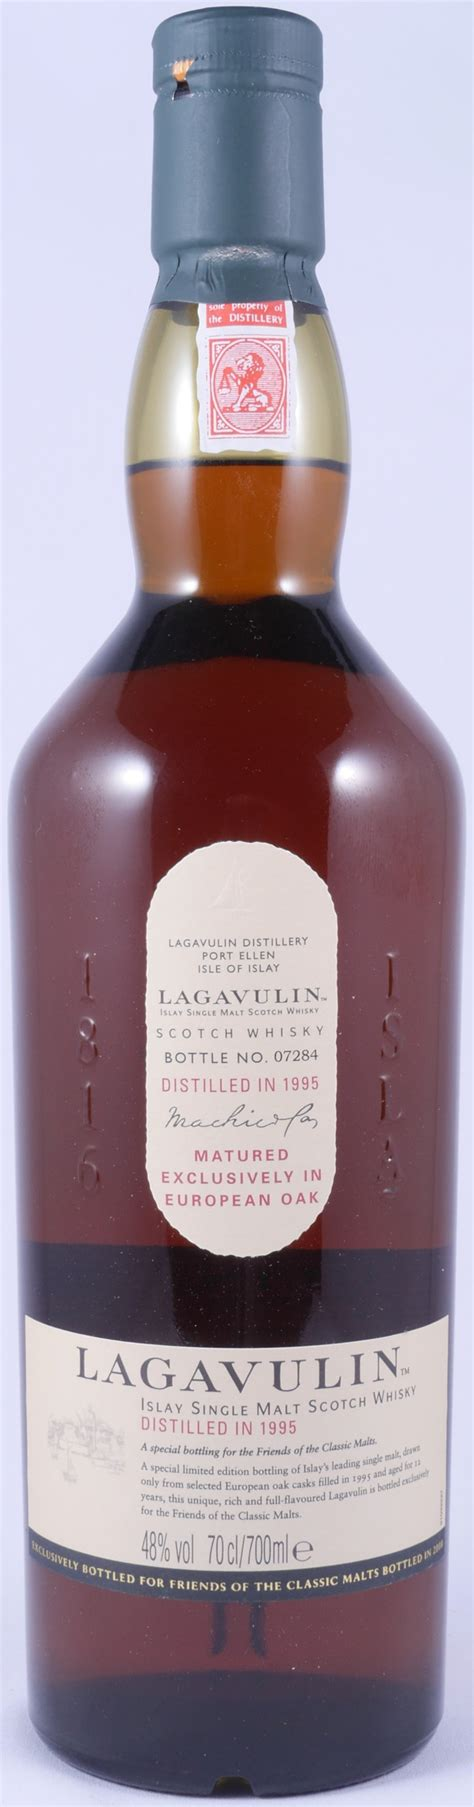 Lagavulin 1995 12 Years FOCM Special Release 2008 Limited